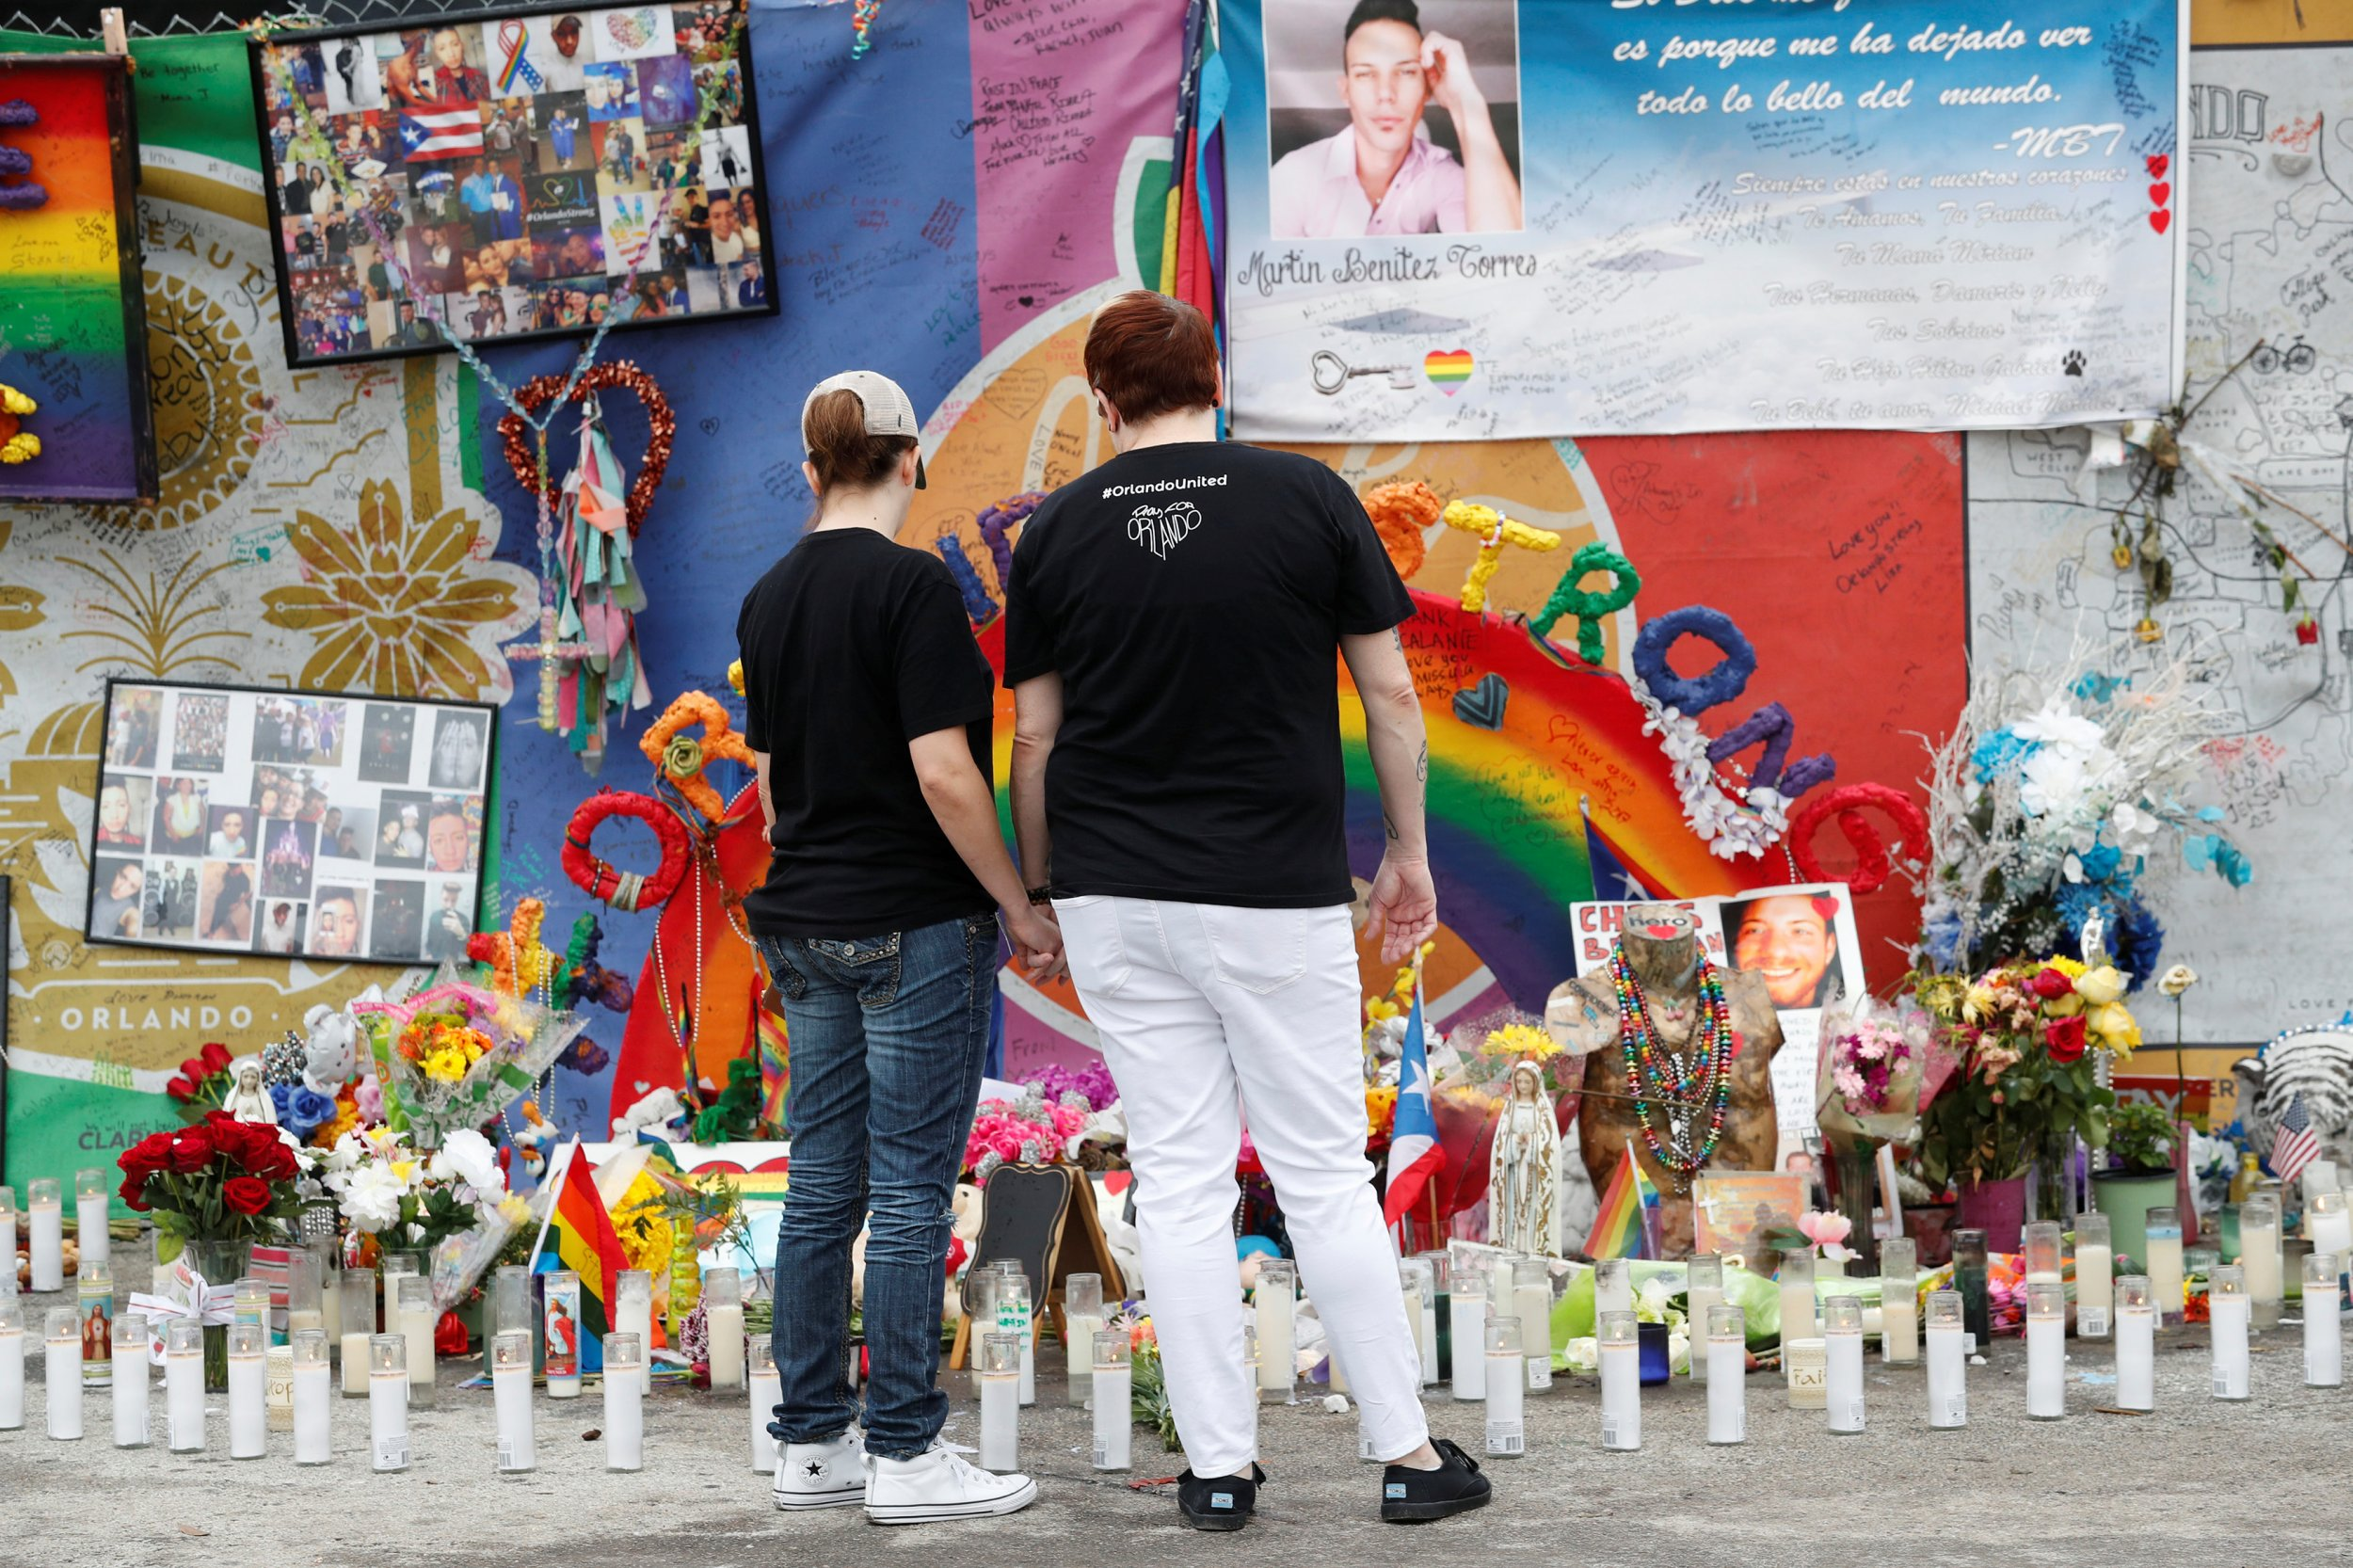 Orlando Pulse Nightclub memorial